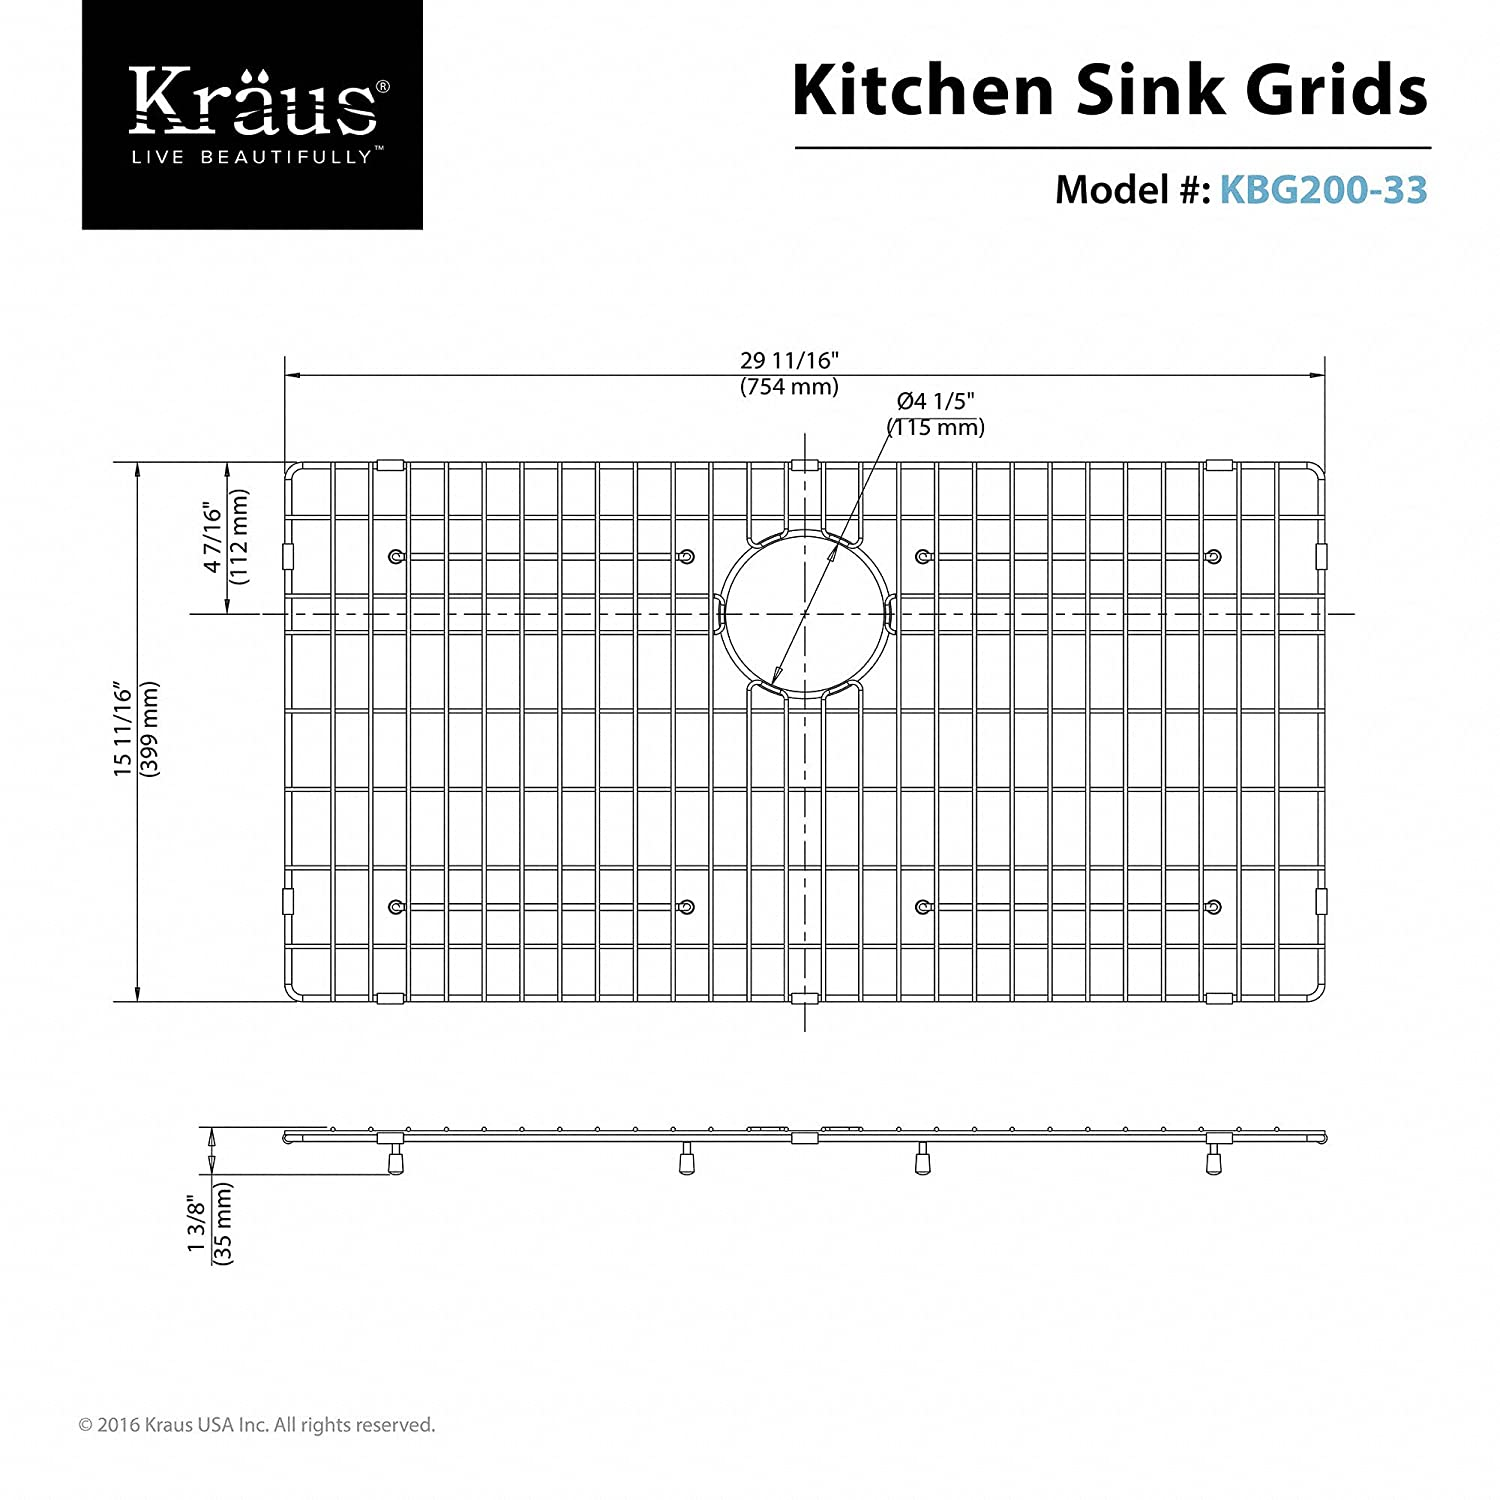 Kraus KBG-200-33 Stainless Steel Bottom Grid: Amazon.co.uk: DIY & Tools